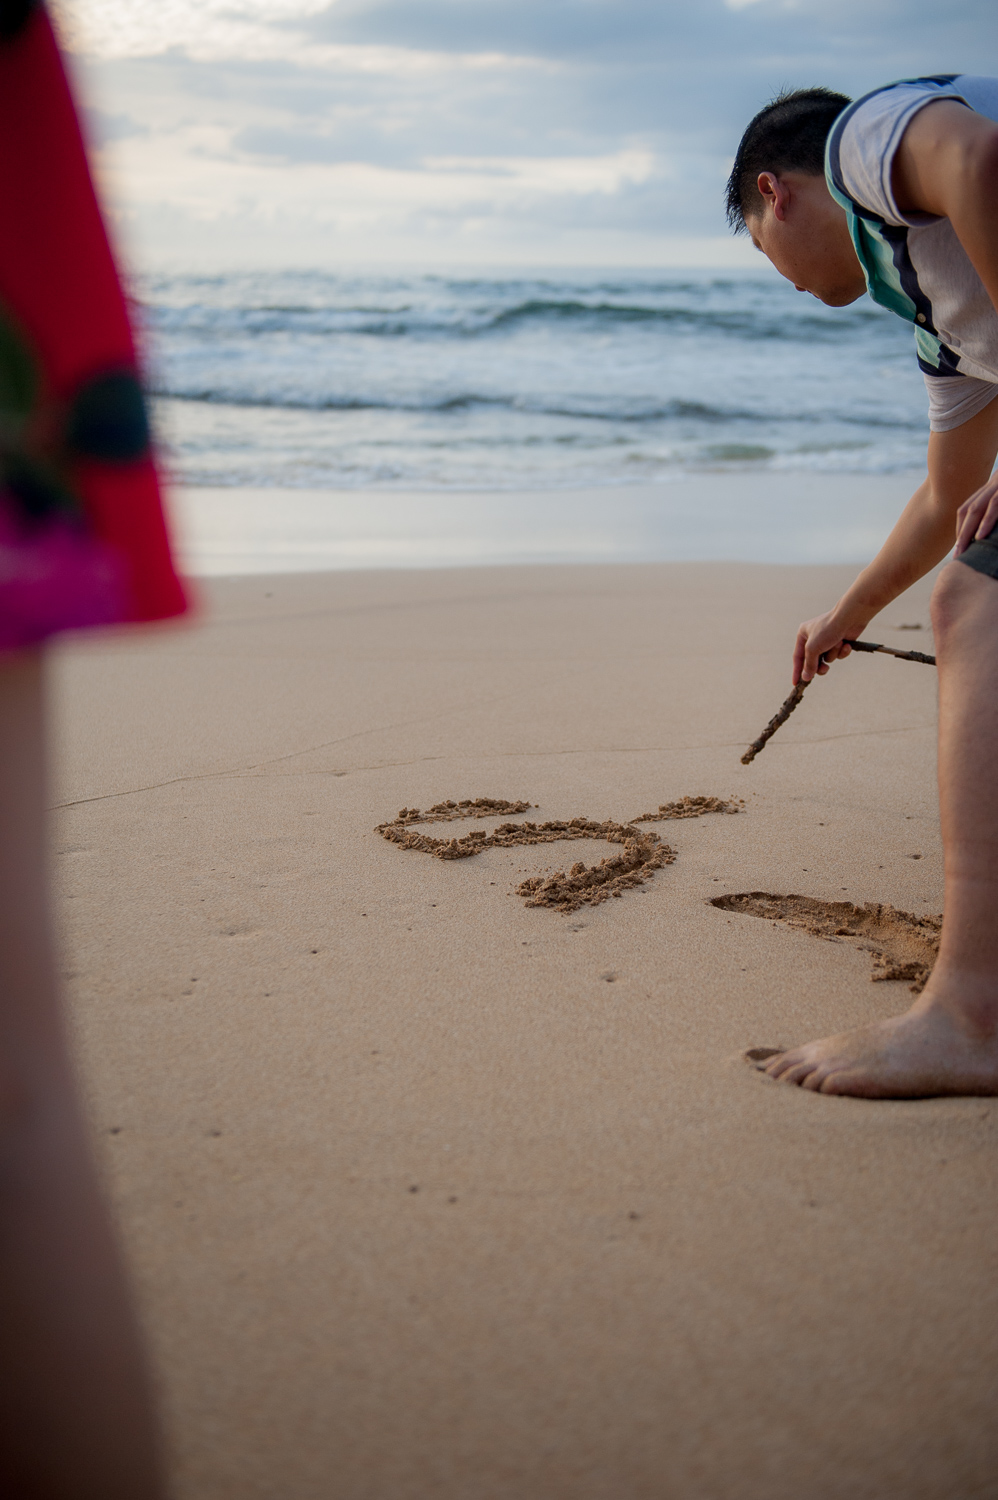 Spelling words on beach with a stick